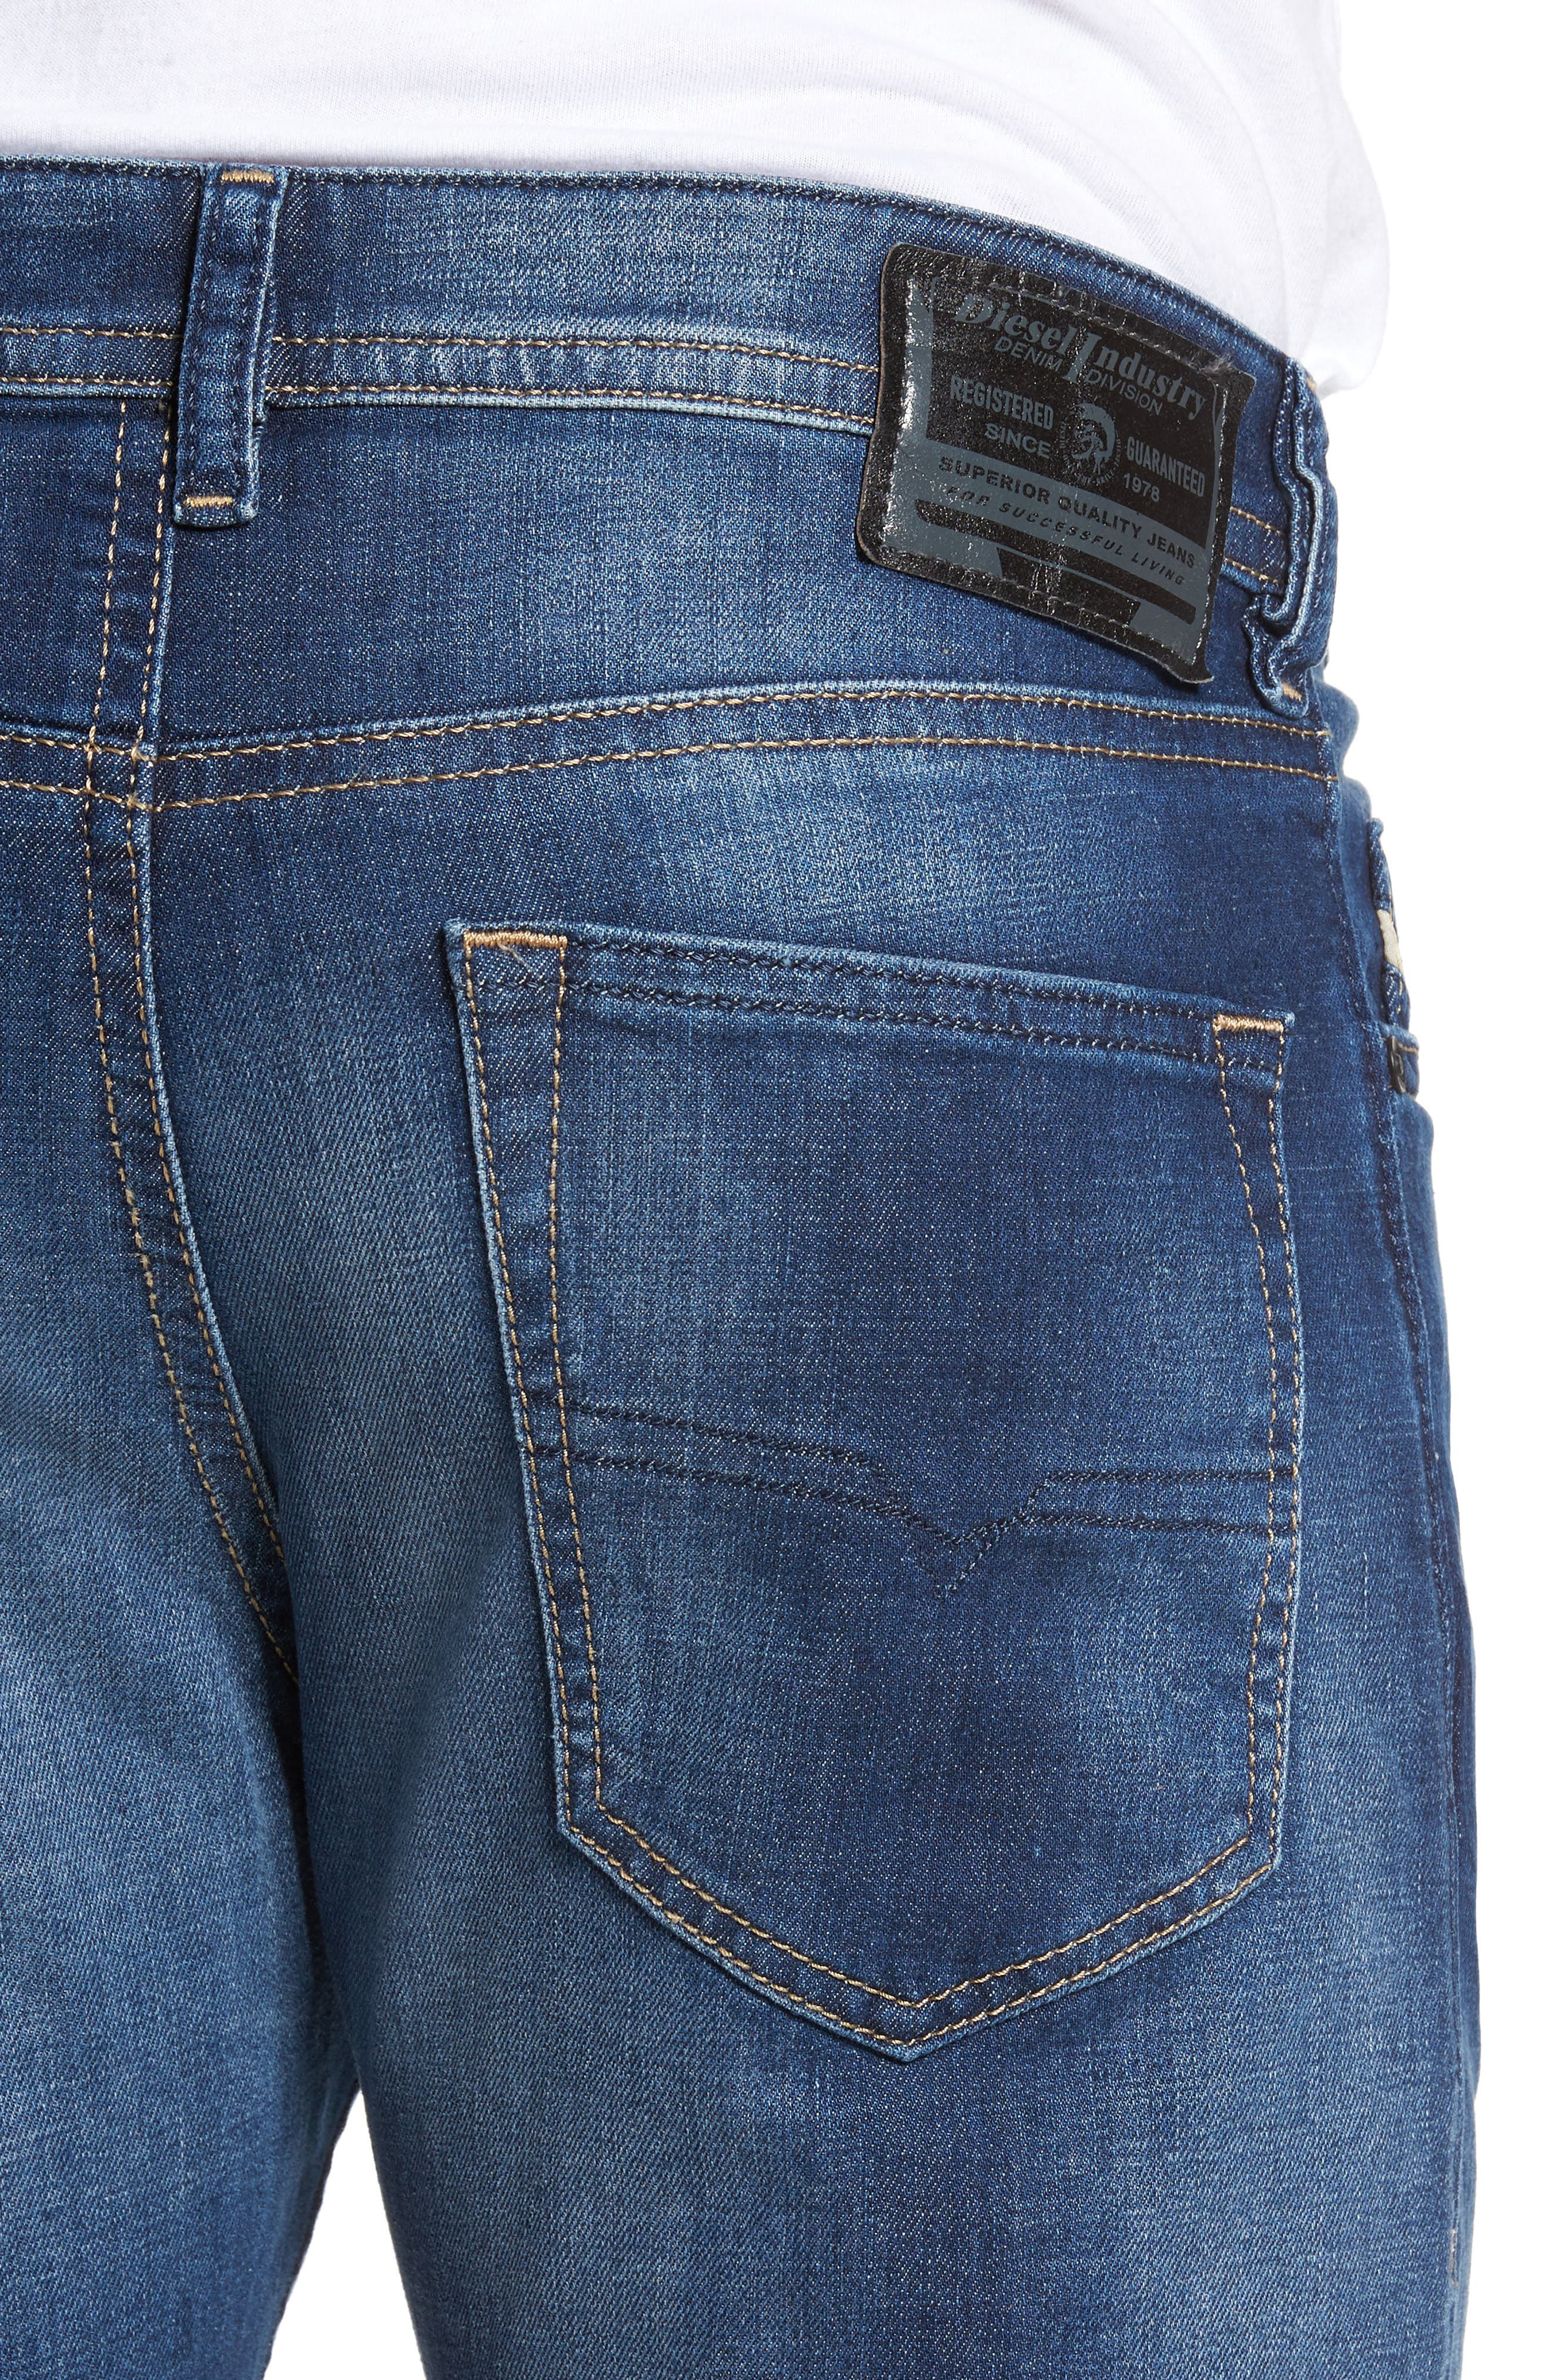 Buster Slim Straight Leg Jeans,                             Alternate thumbnail 4, color,                             400